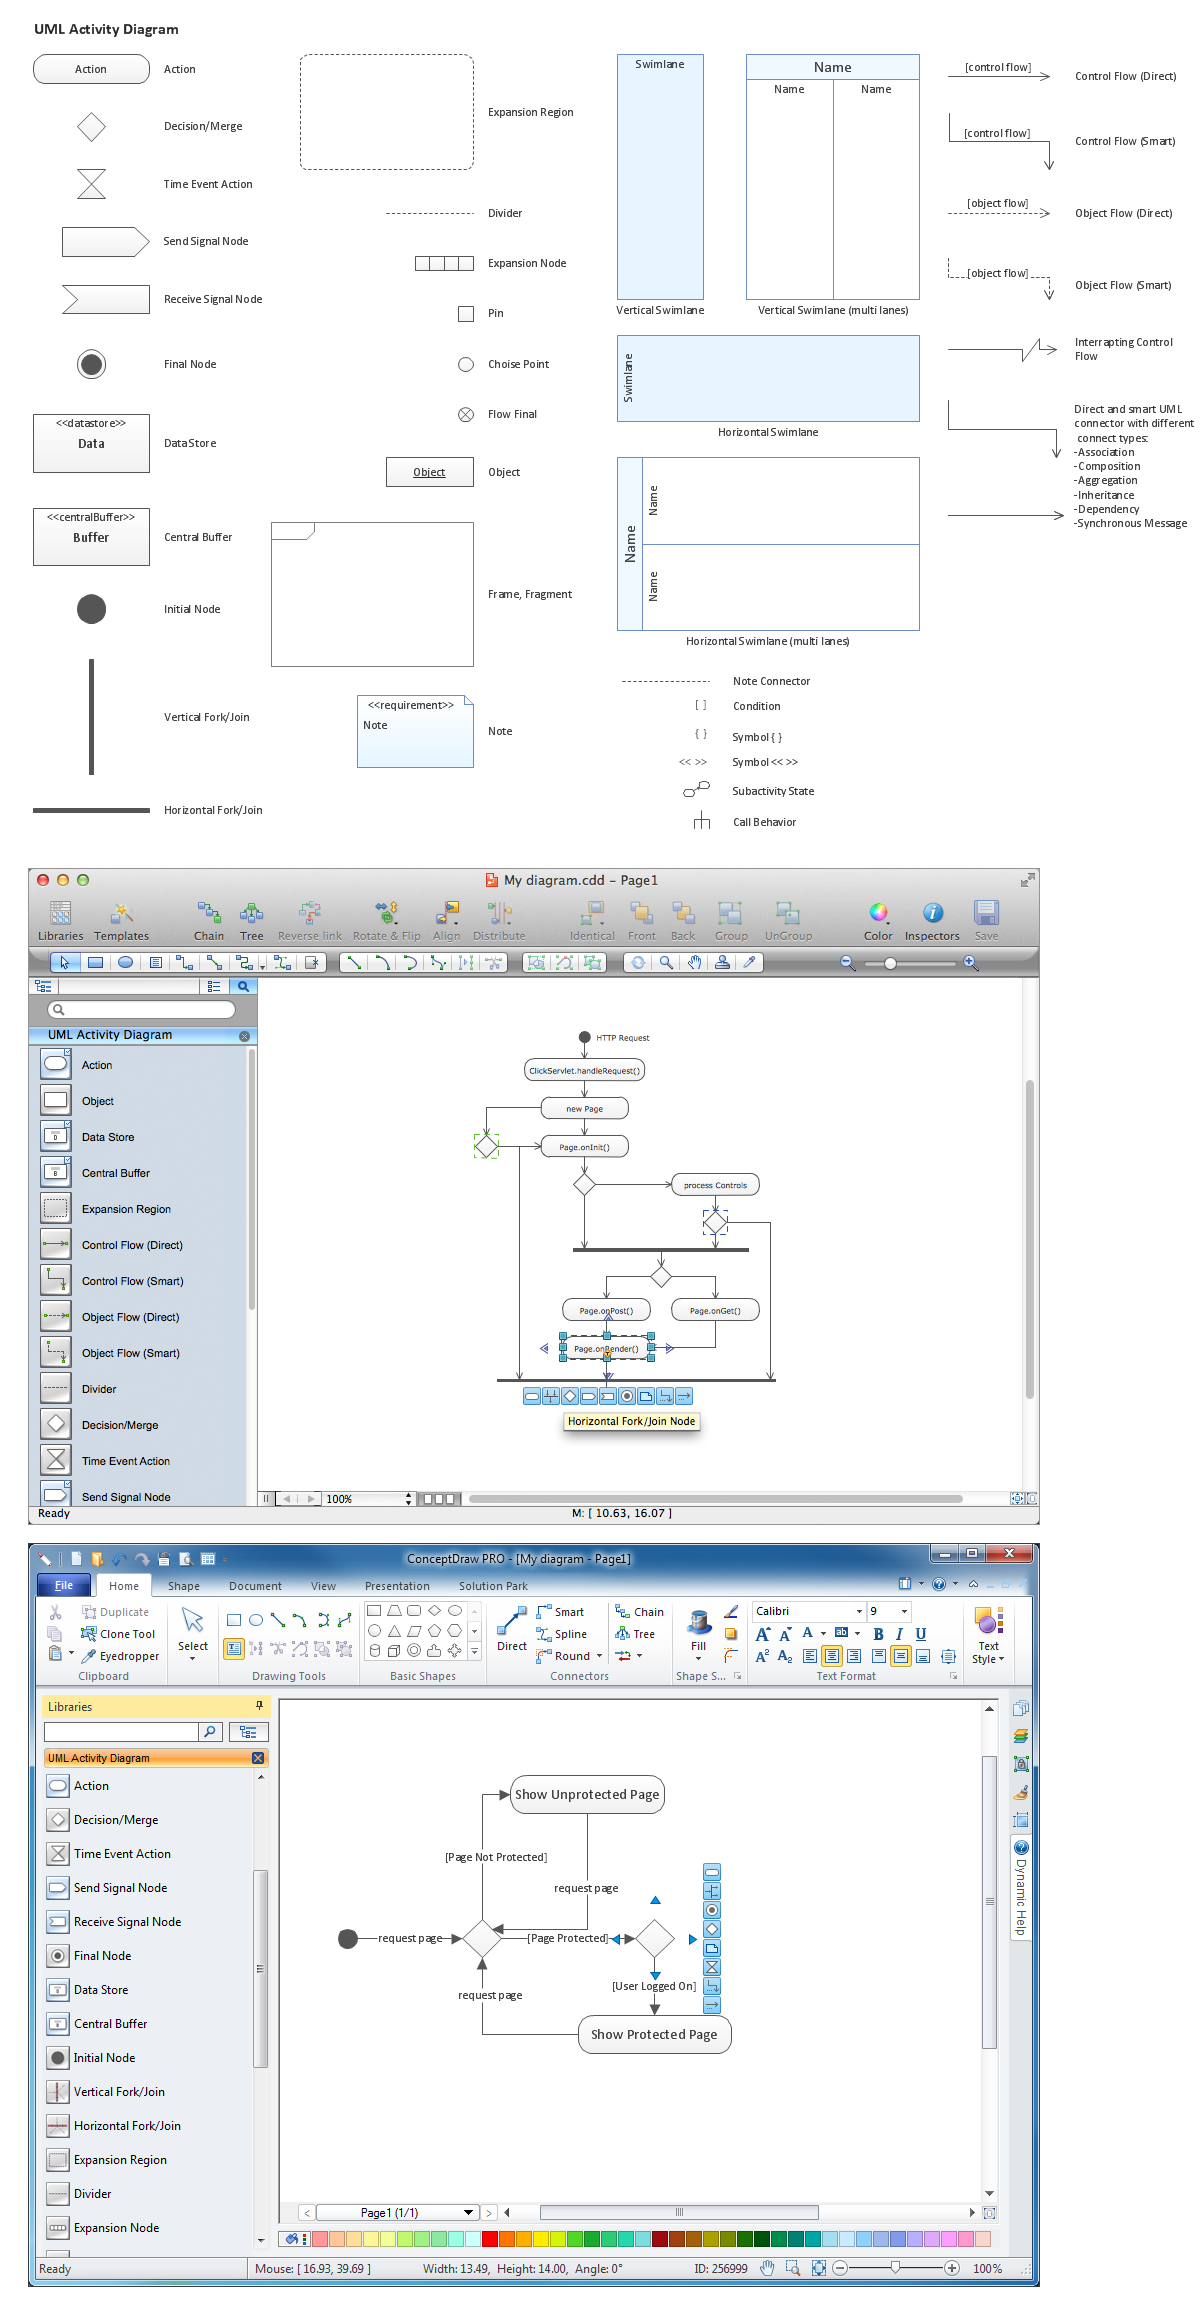 Diagramming Software for Design UML Activity Diagrams (Win, Mac)